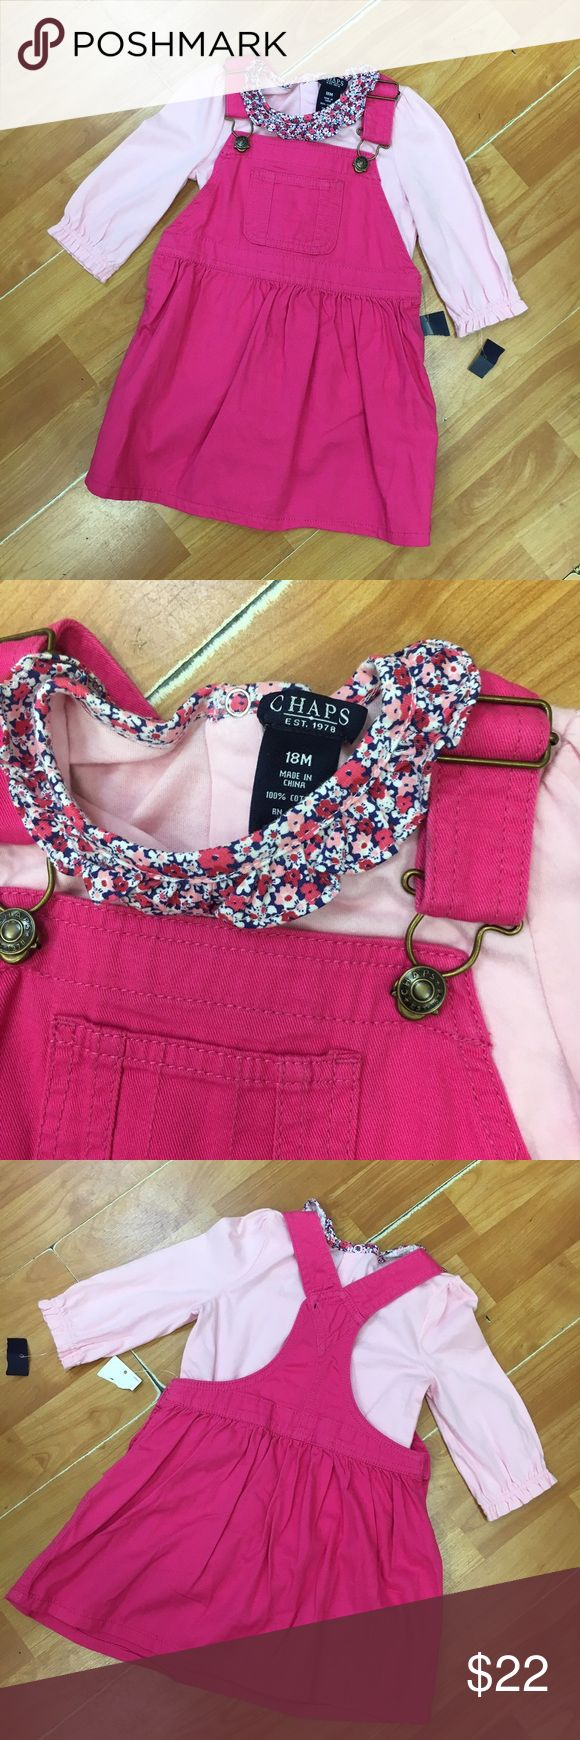 Chaps Pink Jumper Bodysuit NEW NWT 18 Mo Chaps Pink Jumper Bodysuit NEW NWT 18 Mo  Cute pink woven jumper with light pink bodysuit.  Floral trim.  New with tags.  #chaps #jumper #outfit #set #new #nwt #pink Chaps Dresses